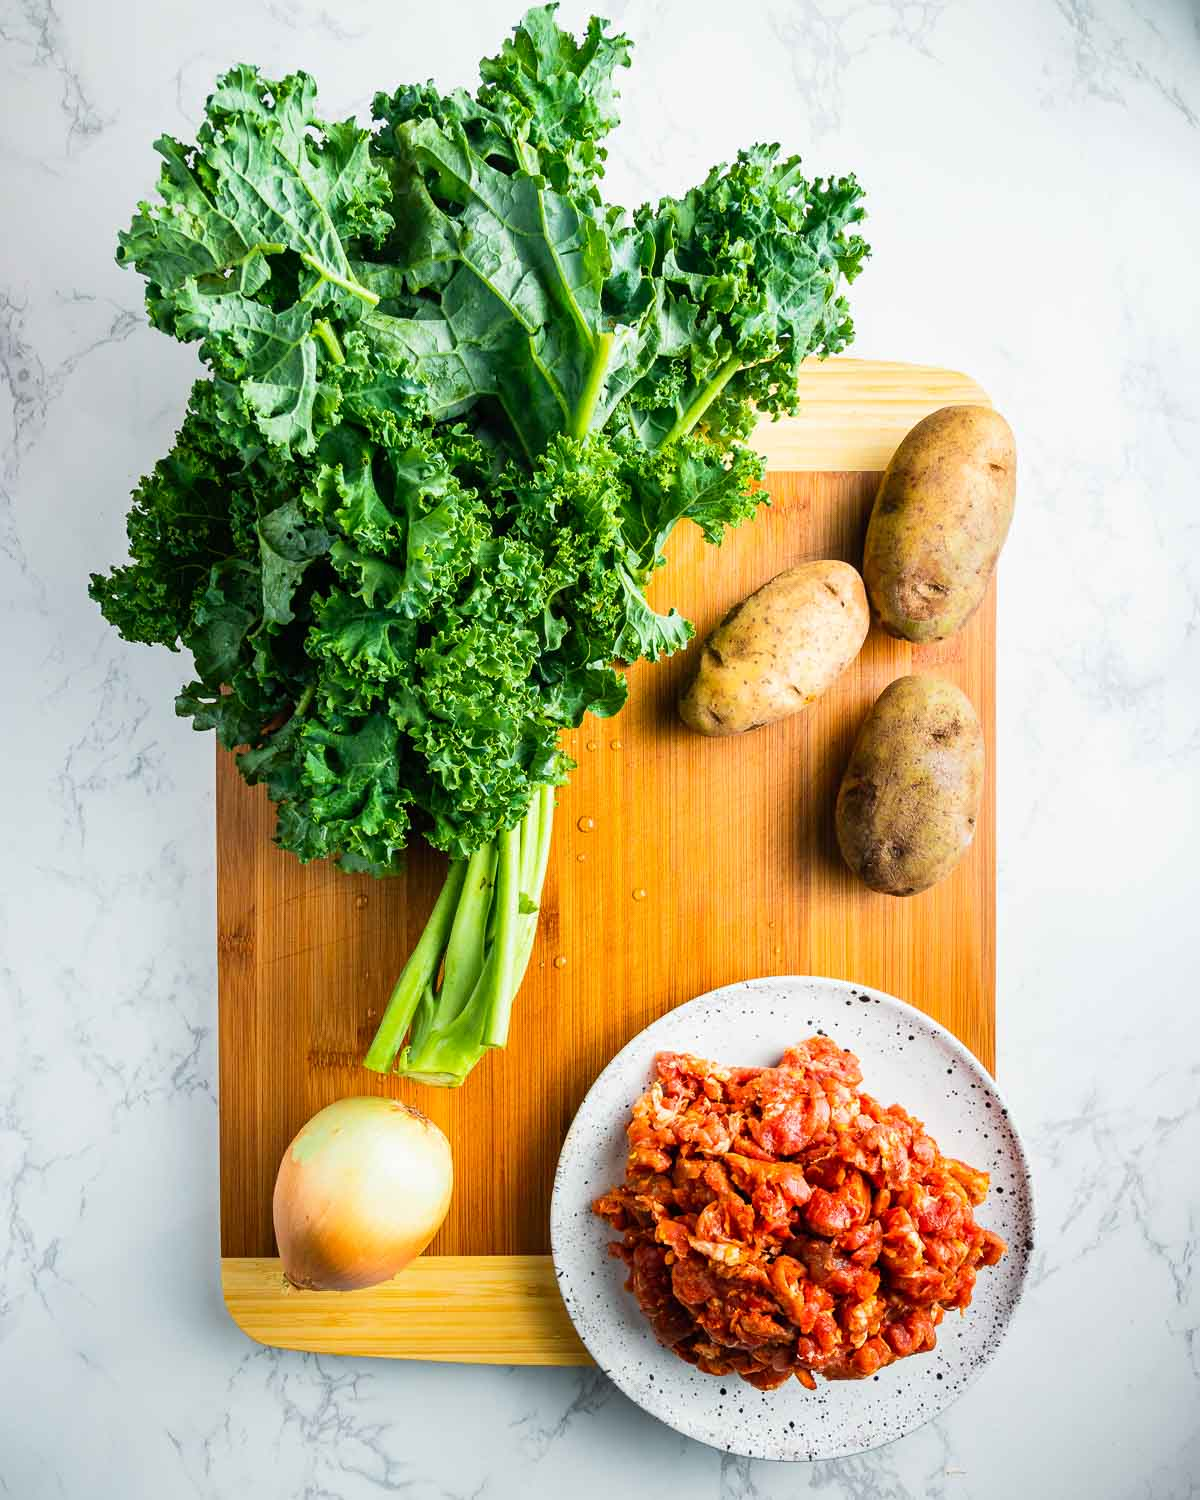 Ingredients shown: Tuscan kale, potatoes, onion, and spicy sausage removed from casing.